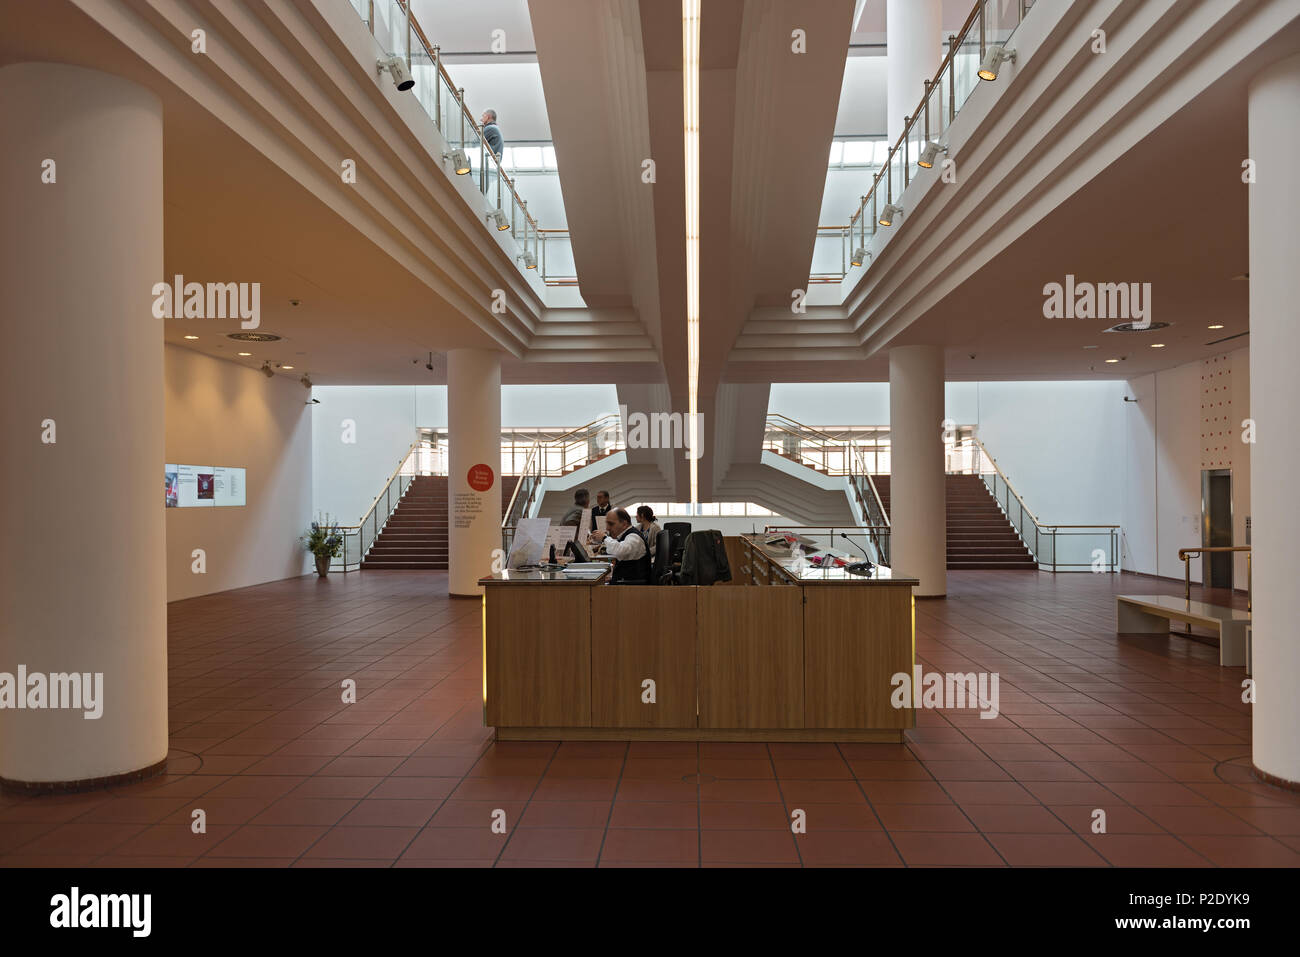 Entrance area and cash register in the museum ludwig, cologne, germany - Stock Image